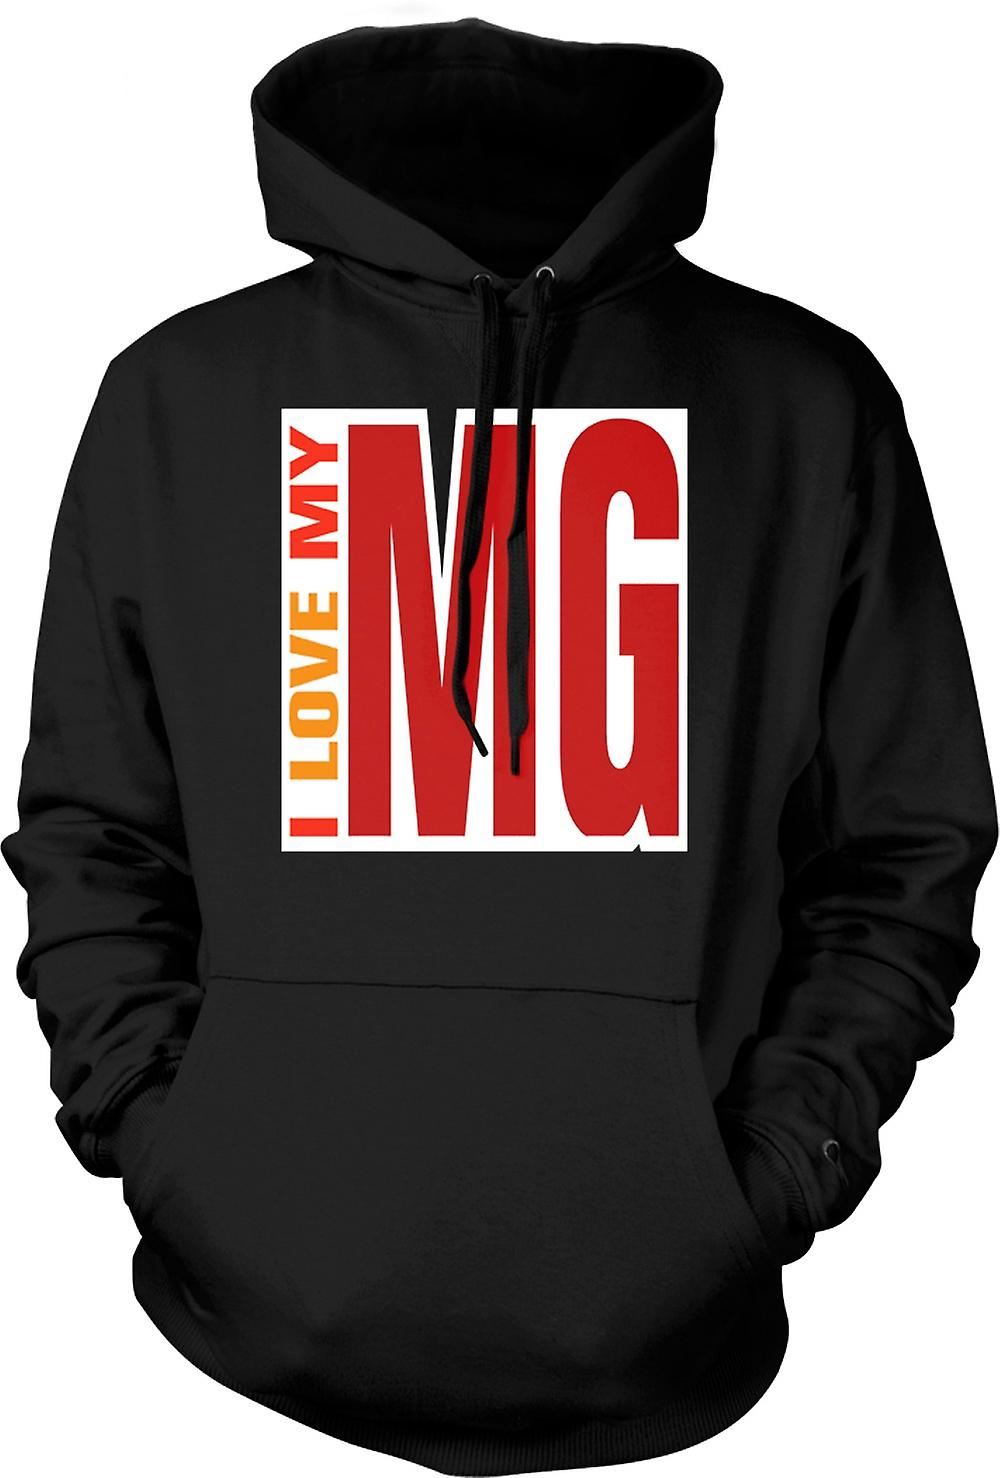 Mens Hoodie - I Love My MG - Car Enthusiast